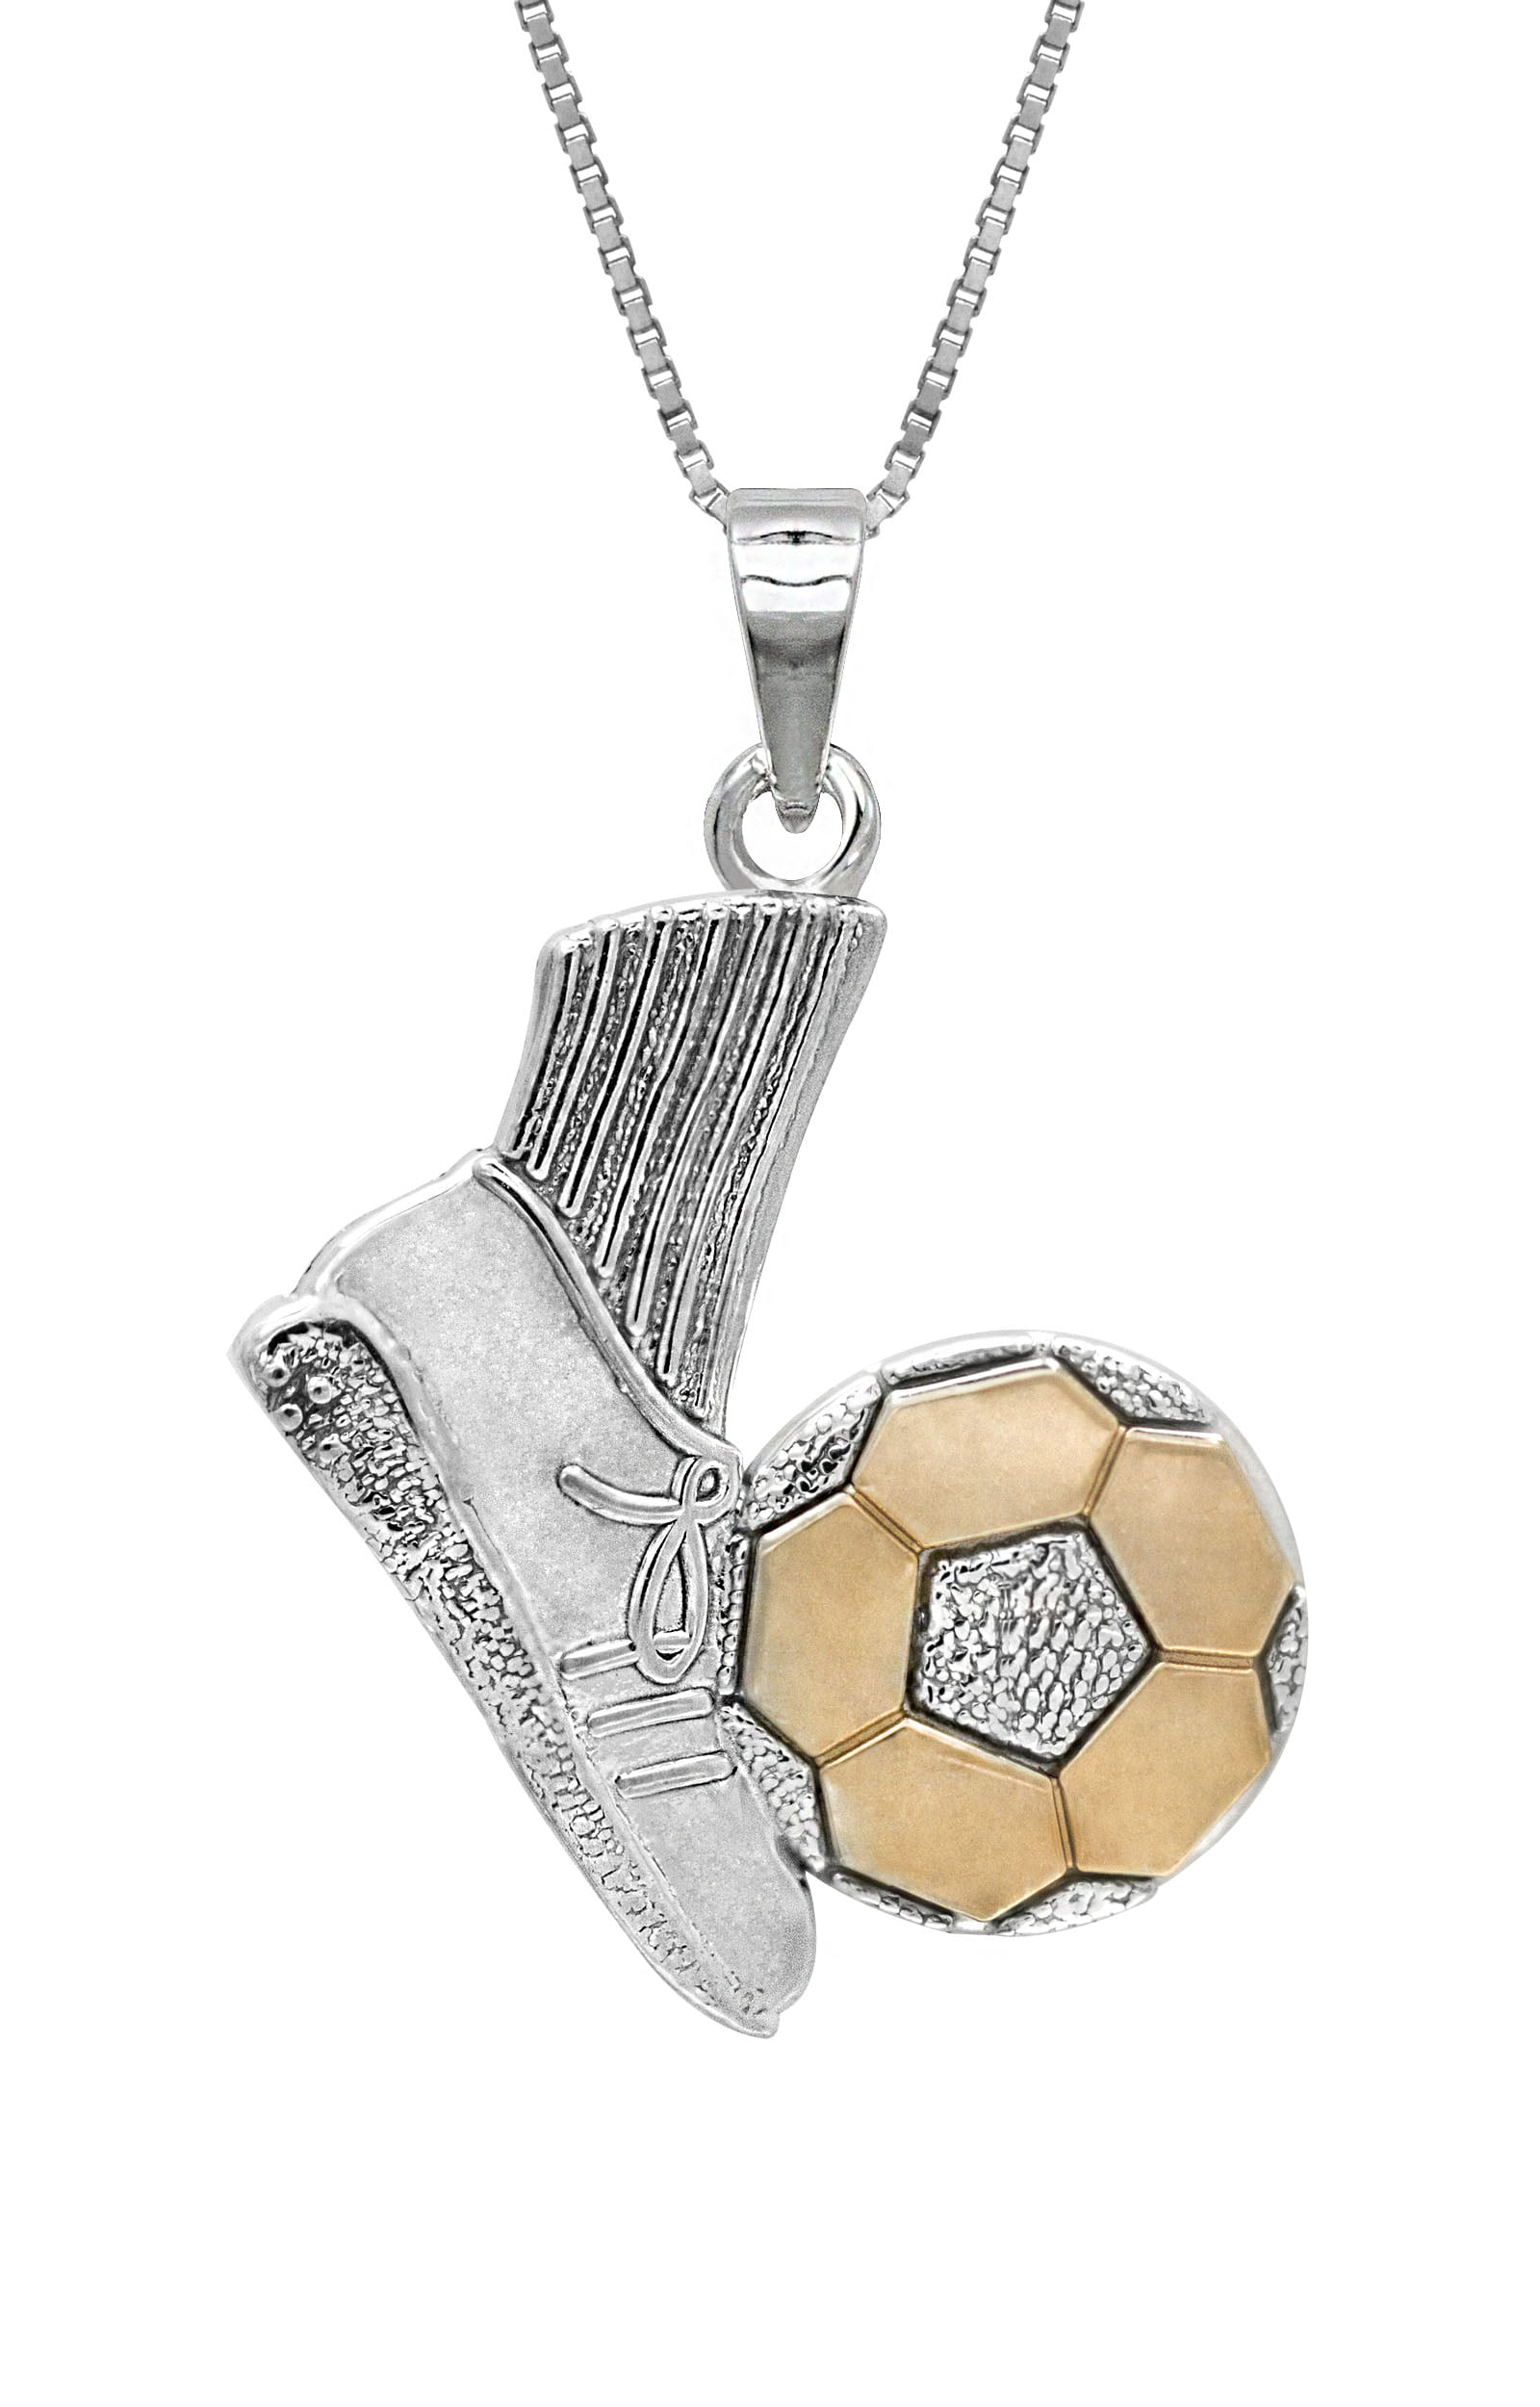 pendant shipping jewelry silver product watches on soccer journee collection overstock over sterling ball orders free